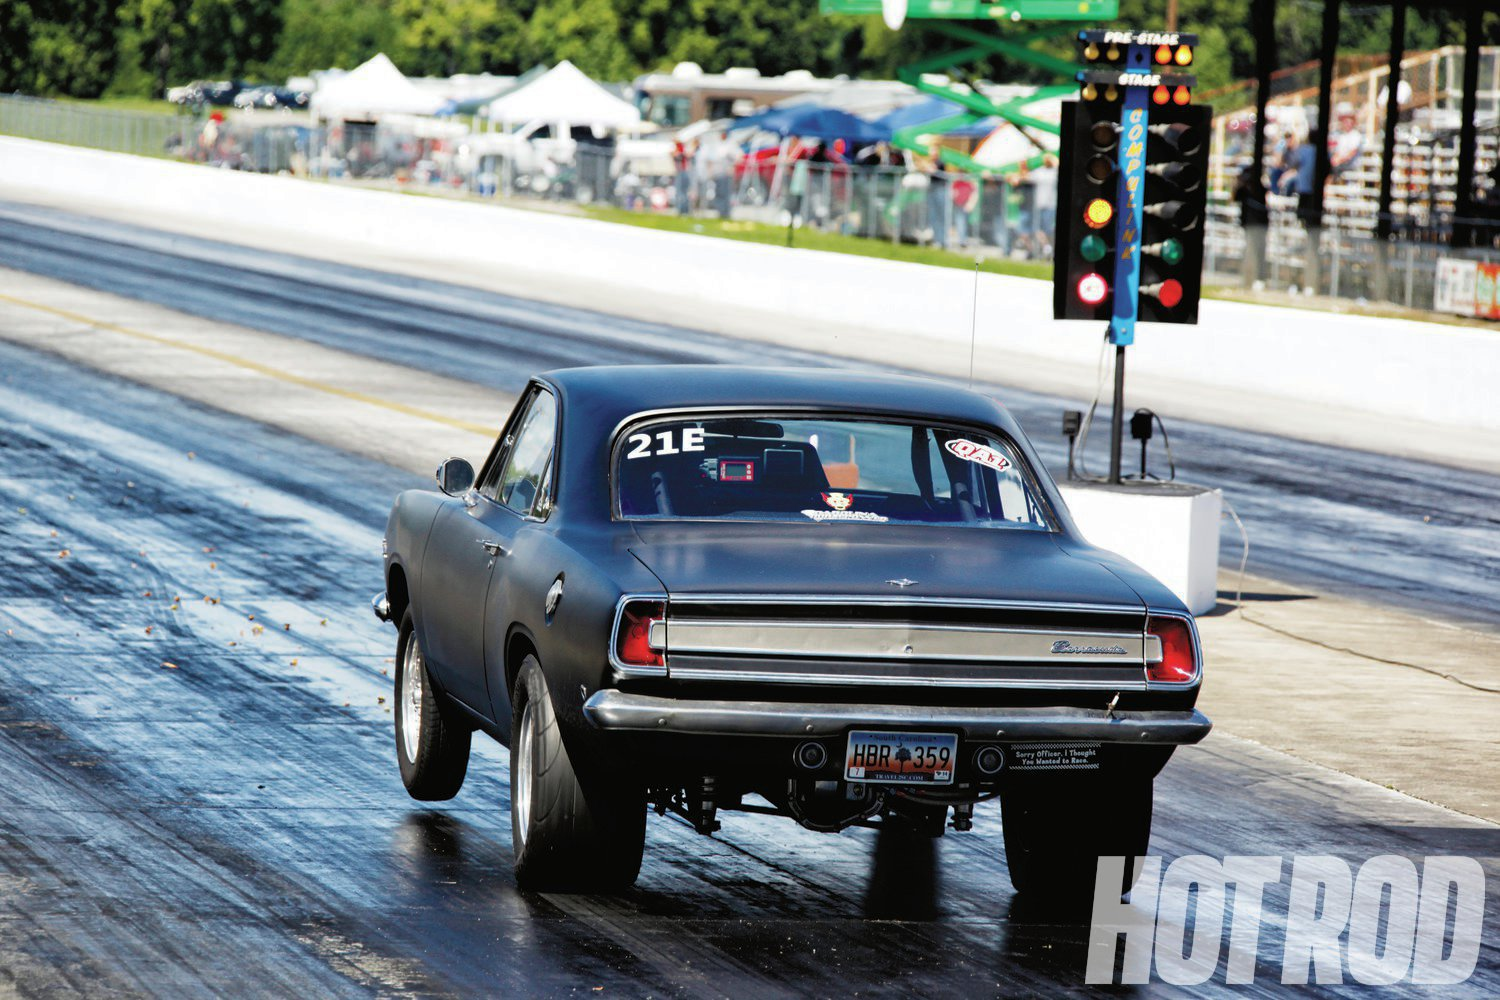 Ray Meyers removed his 440 that won last year's class by running 10.0s (on the brakes) and replaced it with a beefed 6.1L Hemi, only to slow down to 10.60s and a best of 10.37.